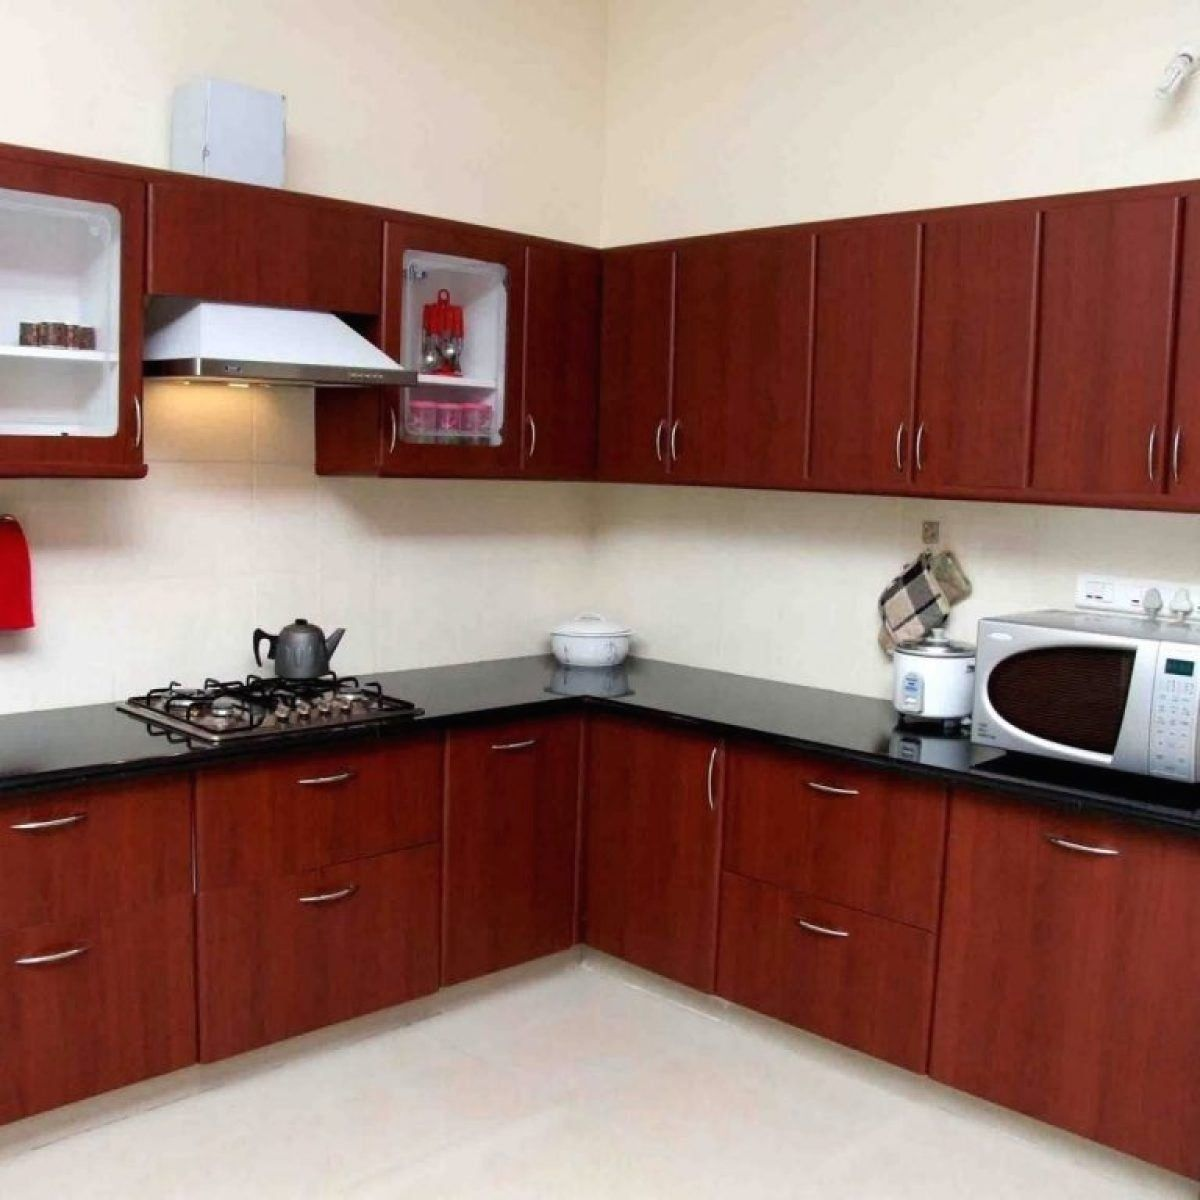 39 The Biggest Myth About Modular Kitchen Design Indian L Shape Exposed 1000 Interior Kitchen Small Kitchen Furniture Design Aluminum Kitchen Cabinets